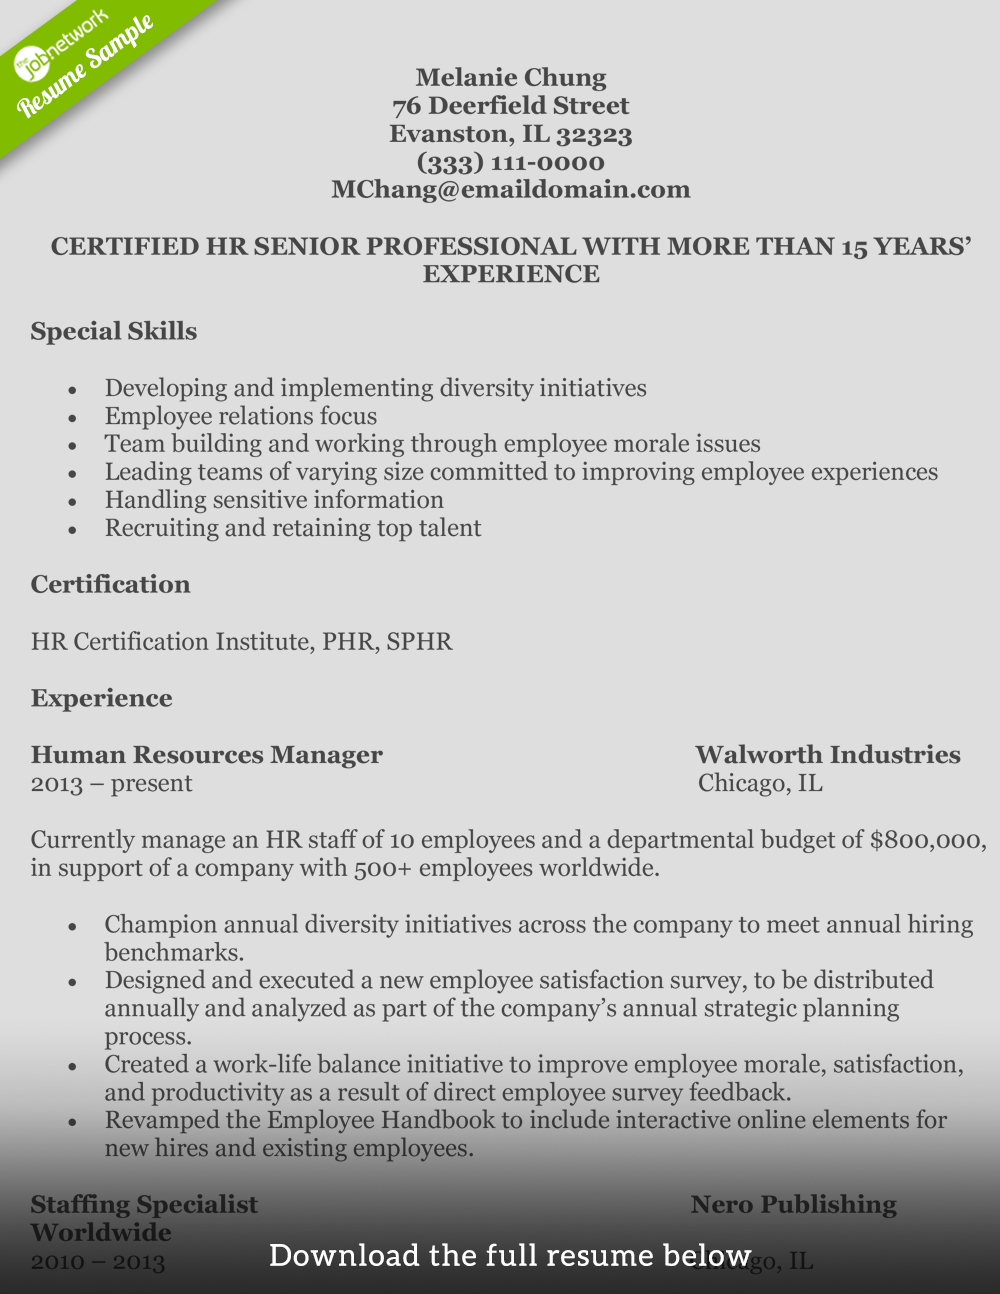 human-resources-resume-melanie